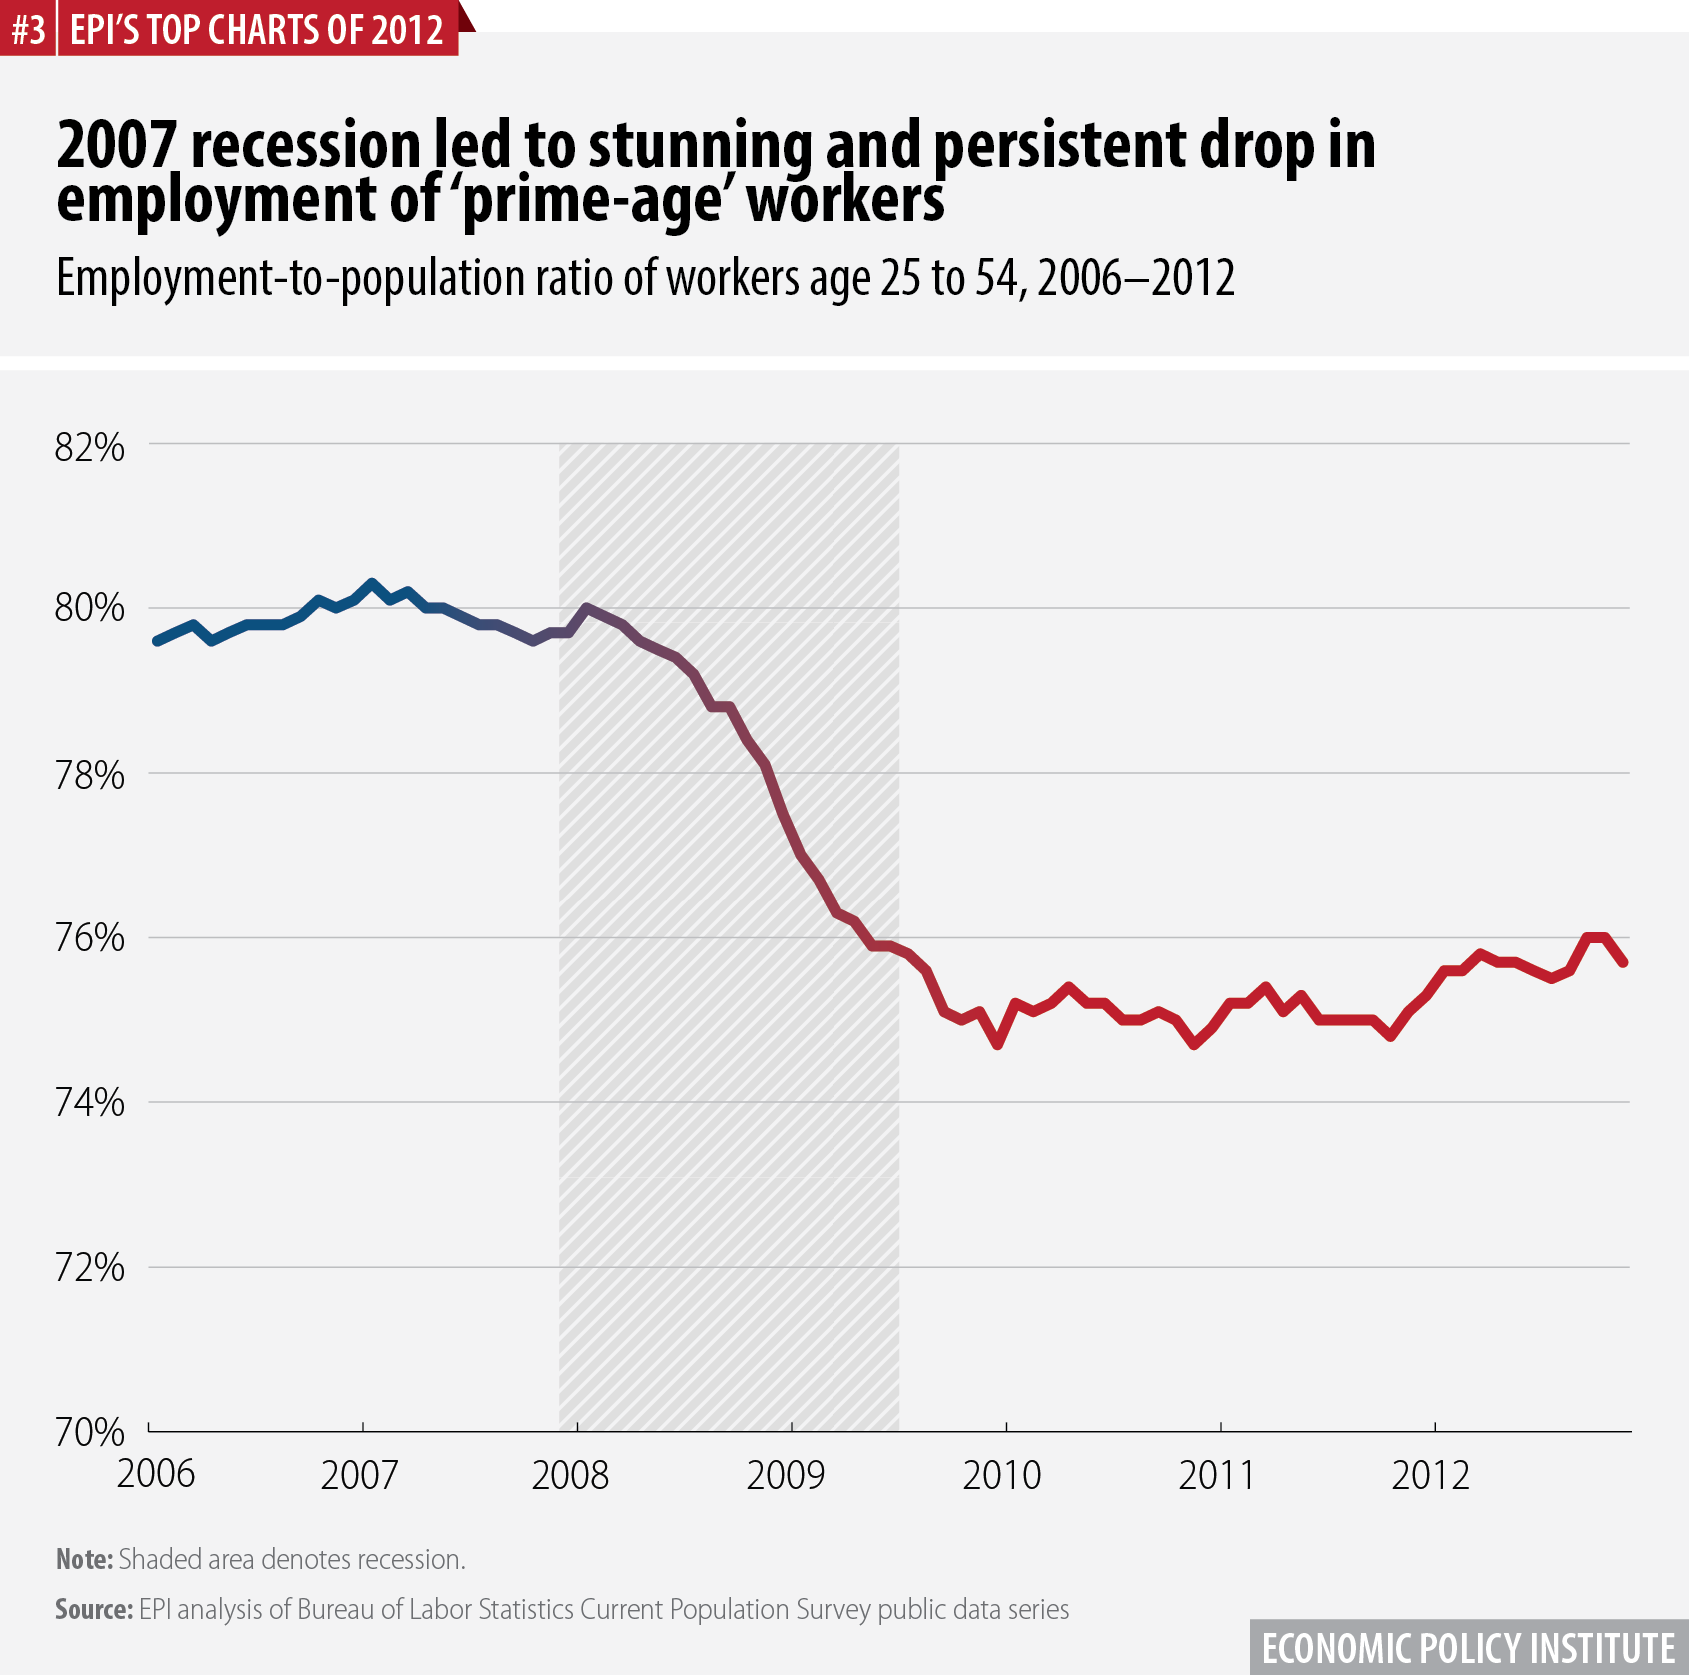 2007 recession led to stunning and persistent drop in employment of 'prime-age' workers | Employment-to-population ratio of workers age 25 to 54, 2006–2012